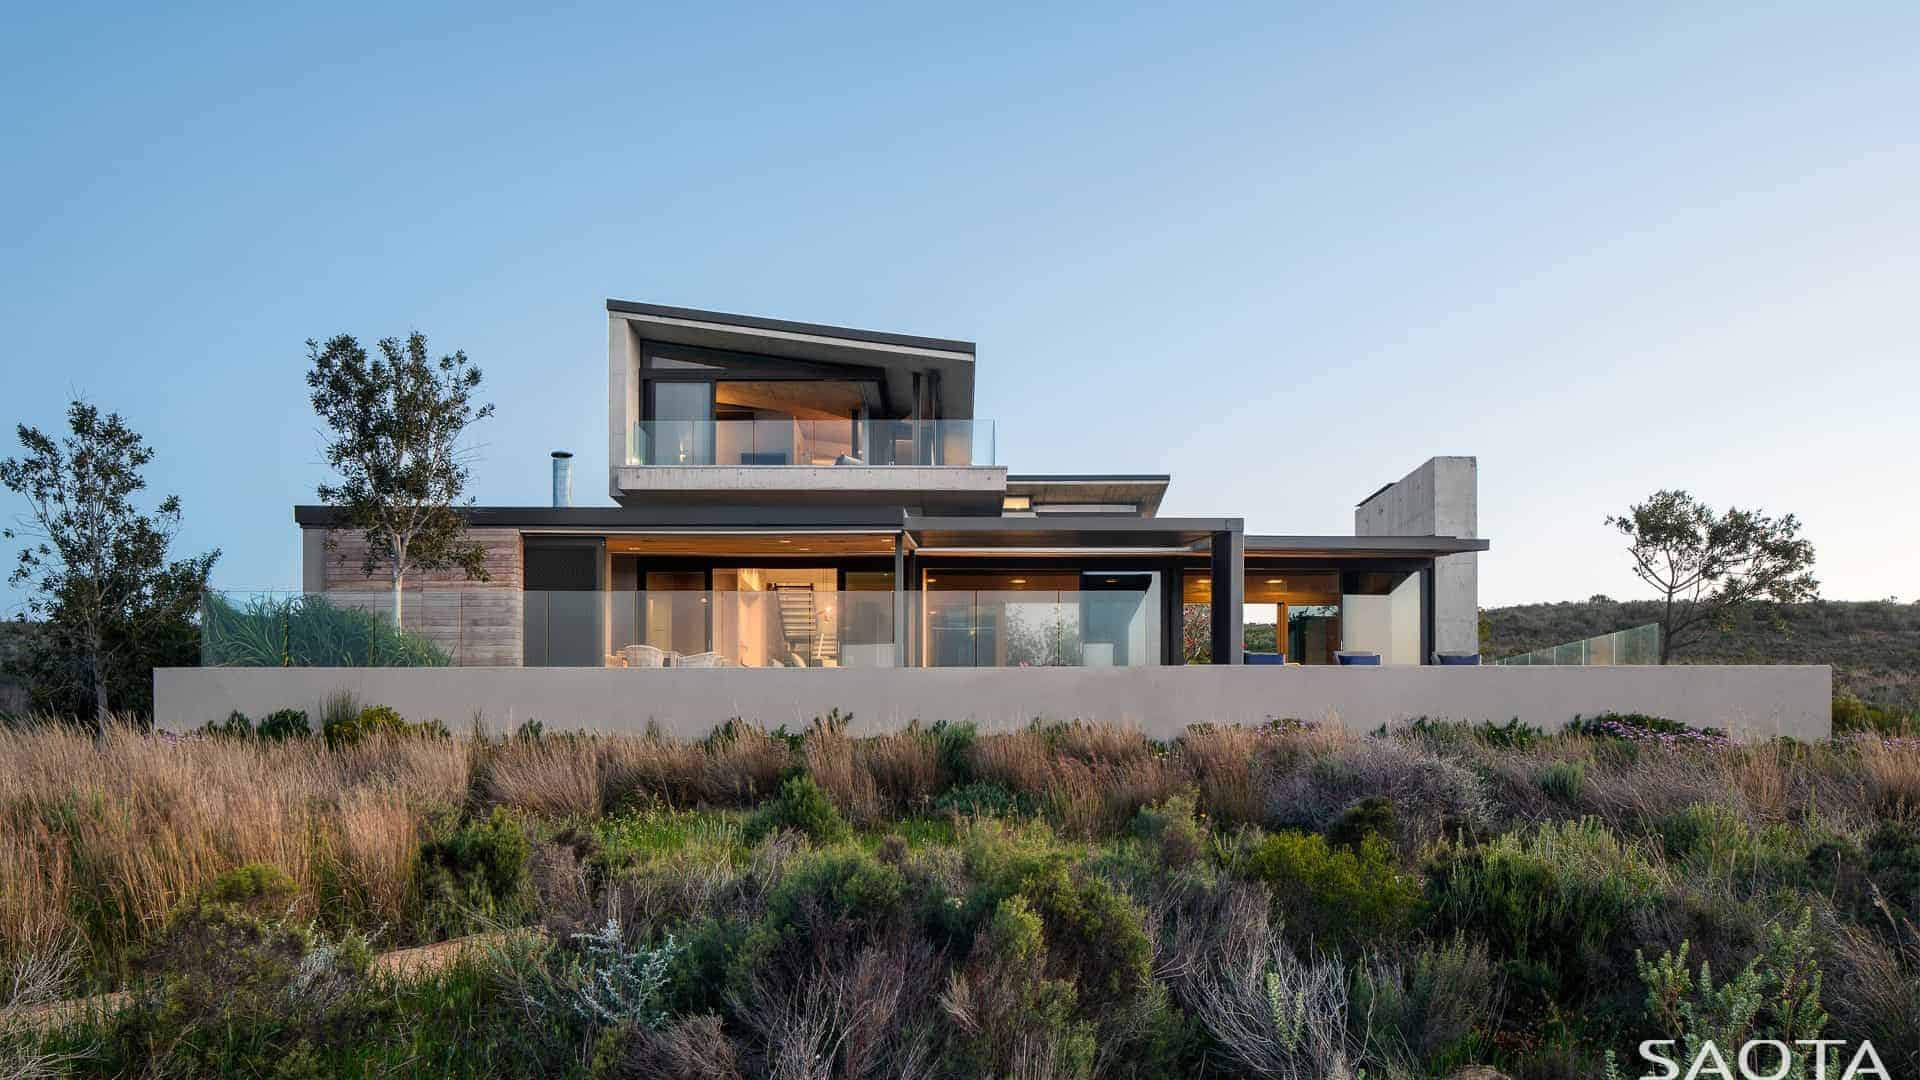 A large contemporary house with a stylish exterior design and a gorgeous interior.